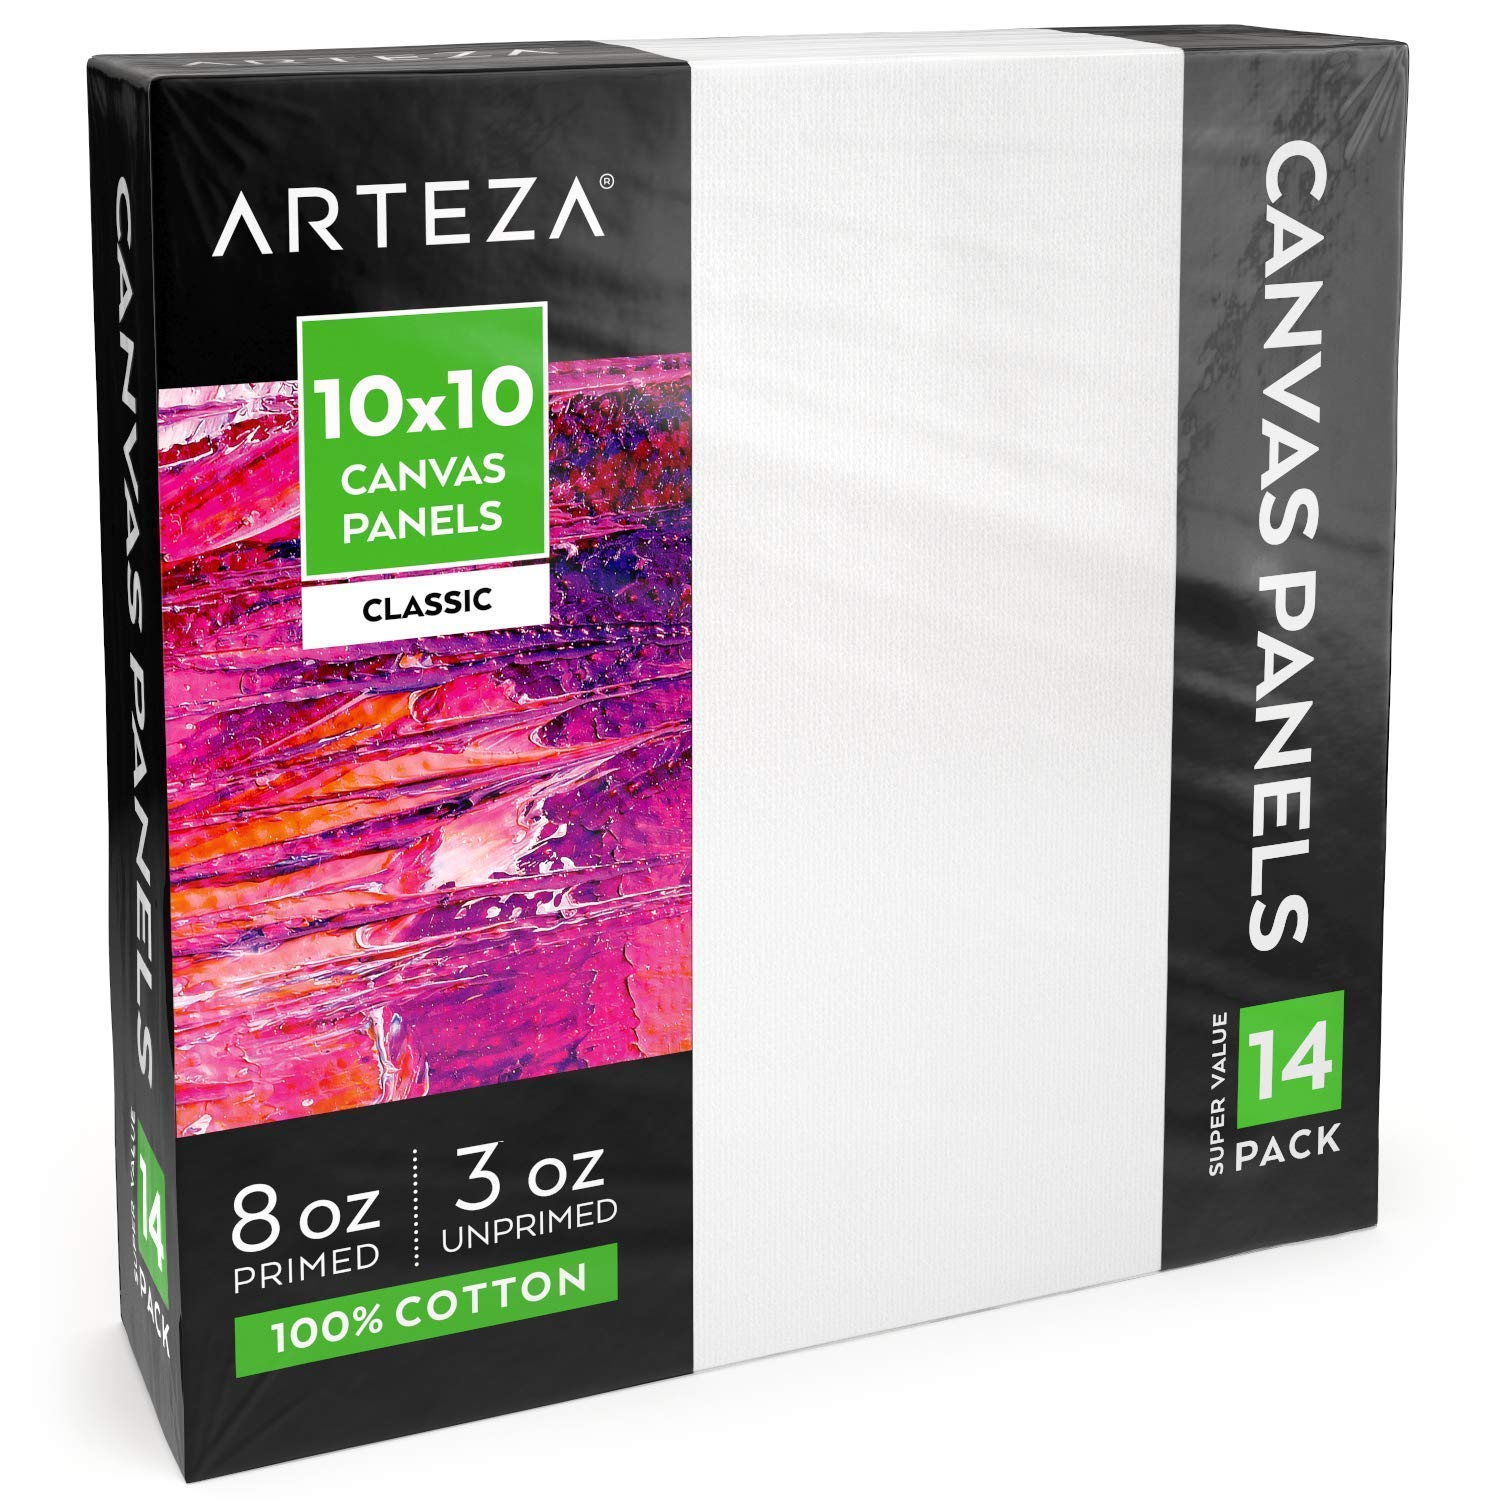 ARTEZA White Blank 100% Cotton Square Canvas Panels Boards, 10 x 10 Inches, Primed Canvases for Acrylic Painting, Oil Paint & Wet Art Media, Pack of 14